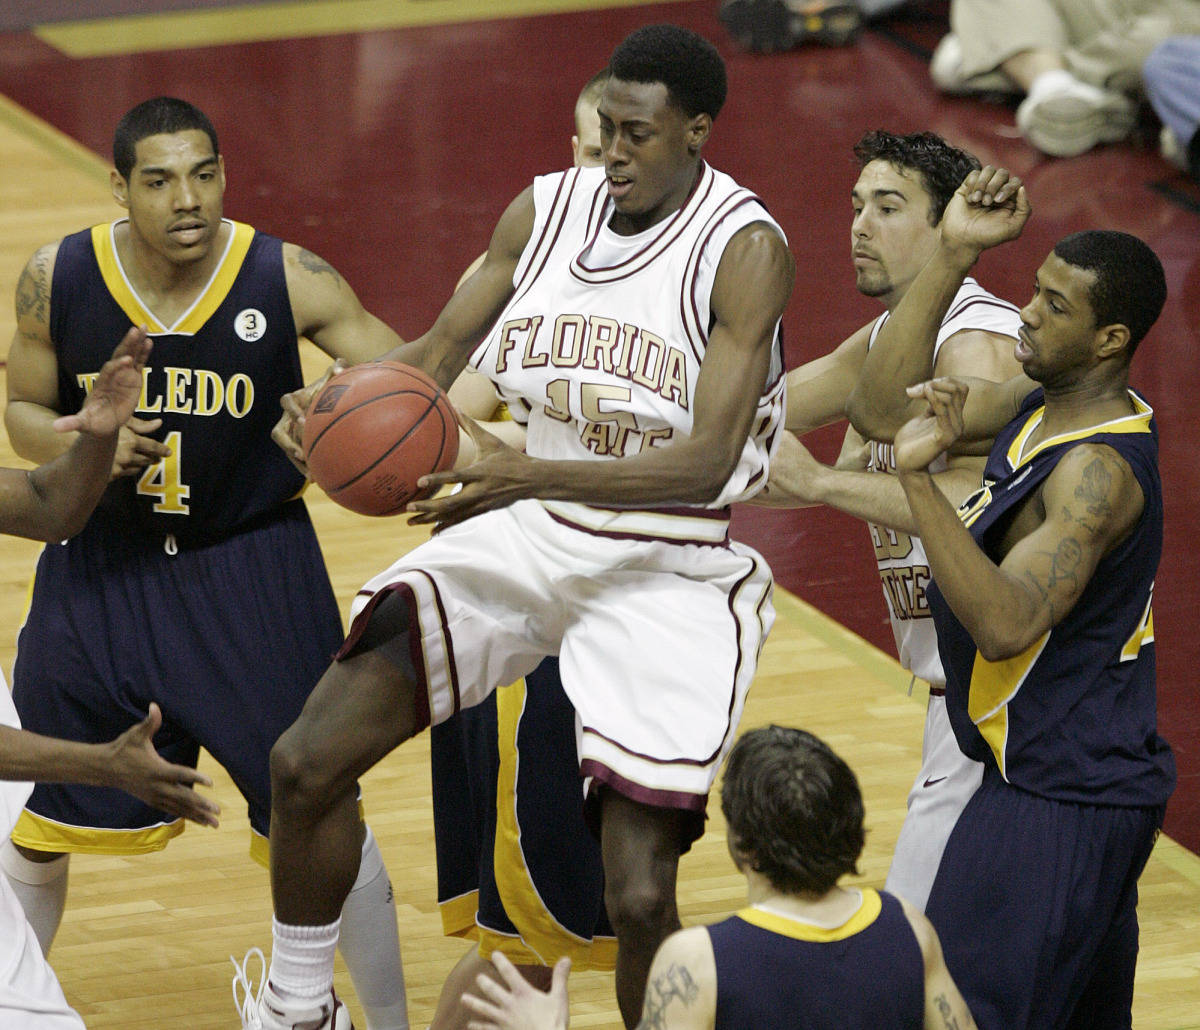 Florida State's Casaan Breeden comes down with an offensive rebound surrounded by Toledo players. (AP Photo/Steve Cannon)